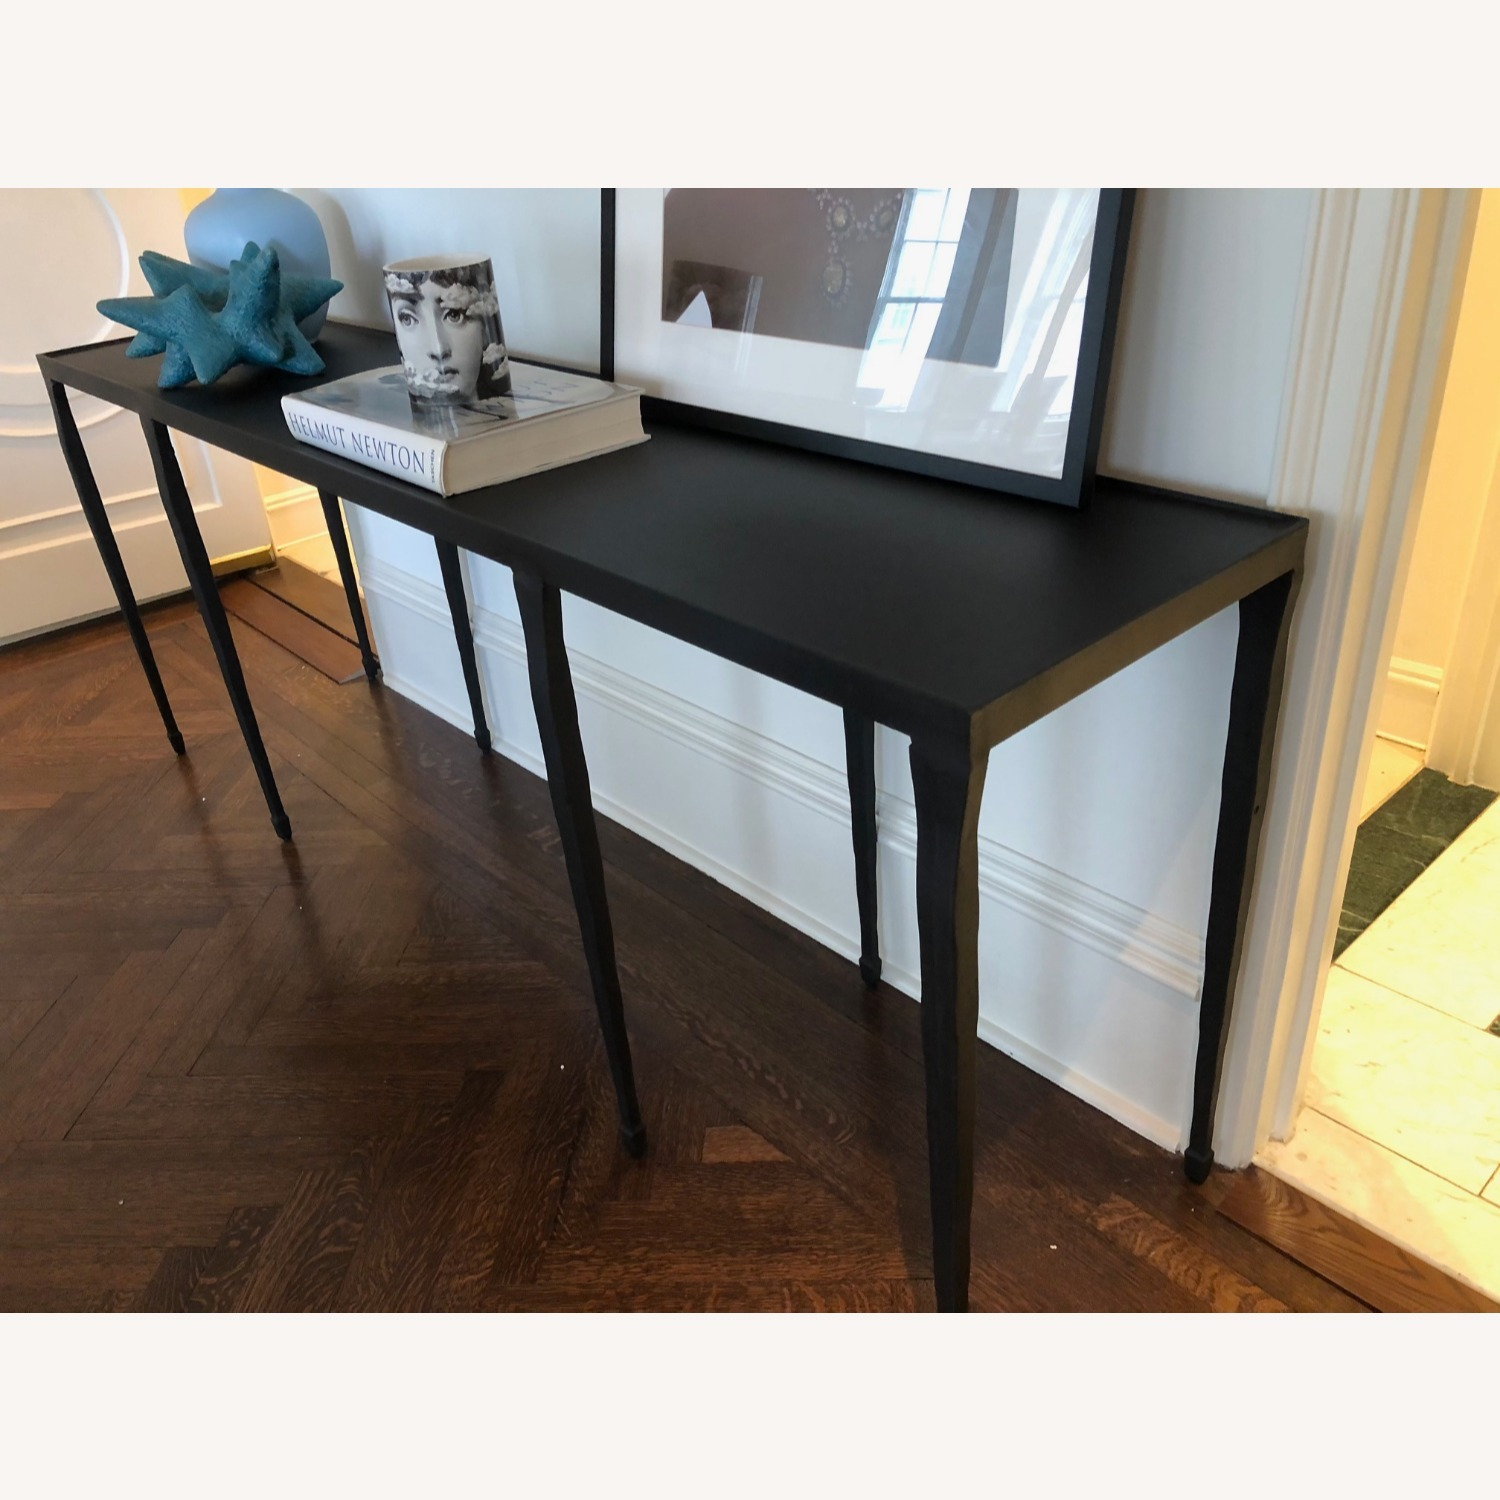 Crate & Barrel Silviano Long Console Table - image-3